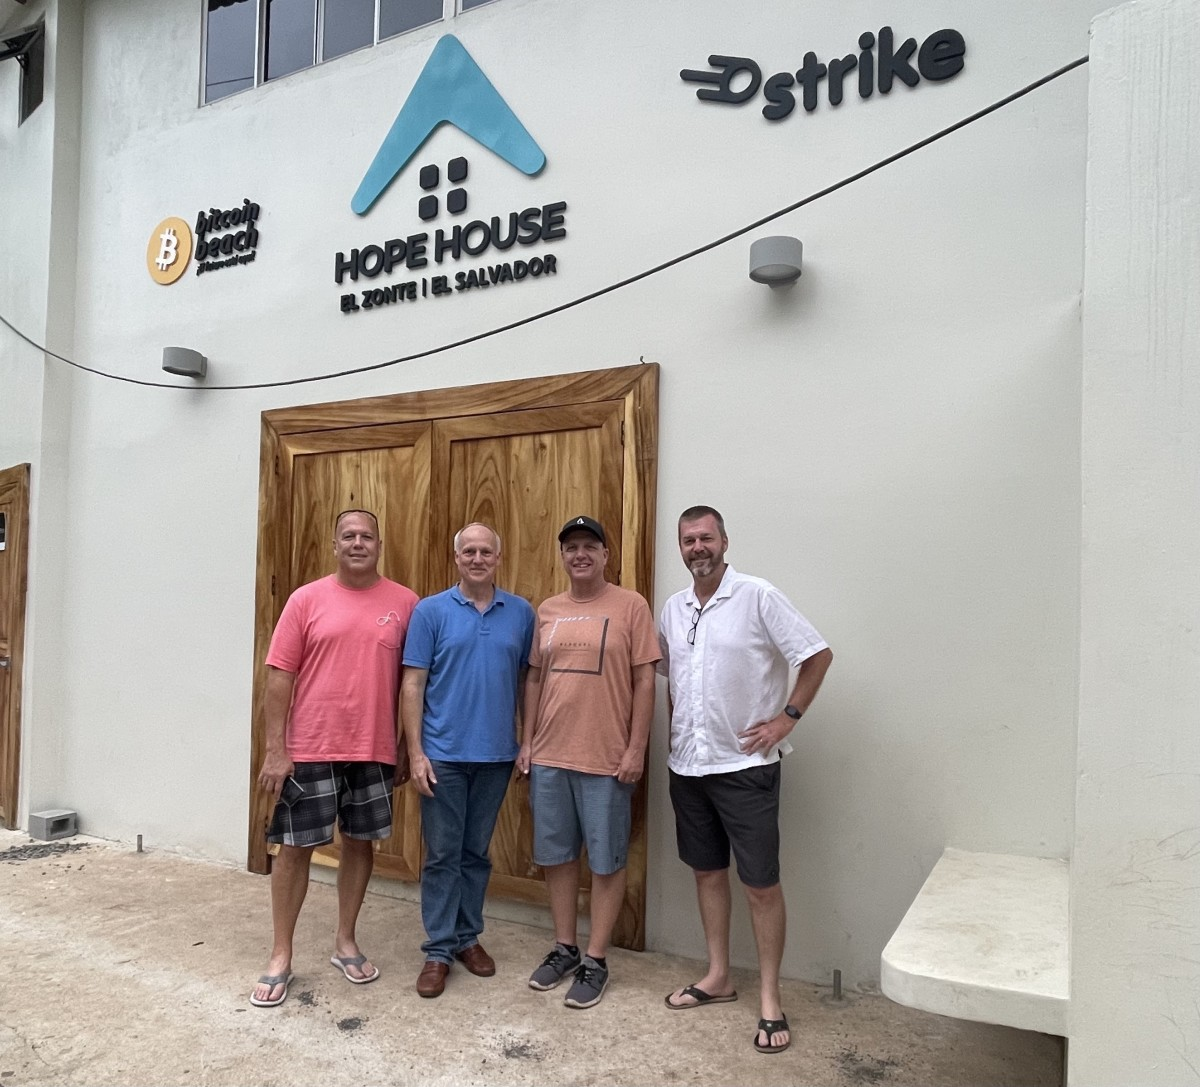 From left to right: Michael Bata (COO of ECI Development), Mike Cobb (CEO of ECI Development), Mike Peterson (founder and visionary behind Bitcoin Beach), Patrick Hiebert (CDO of ECI Development)